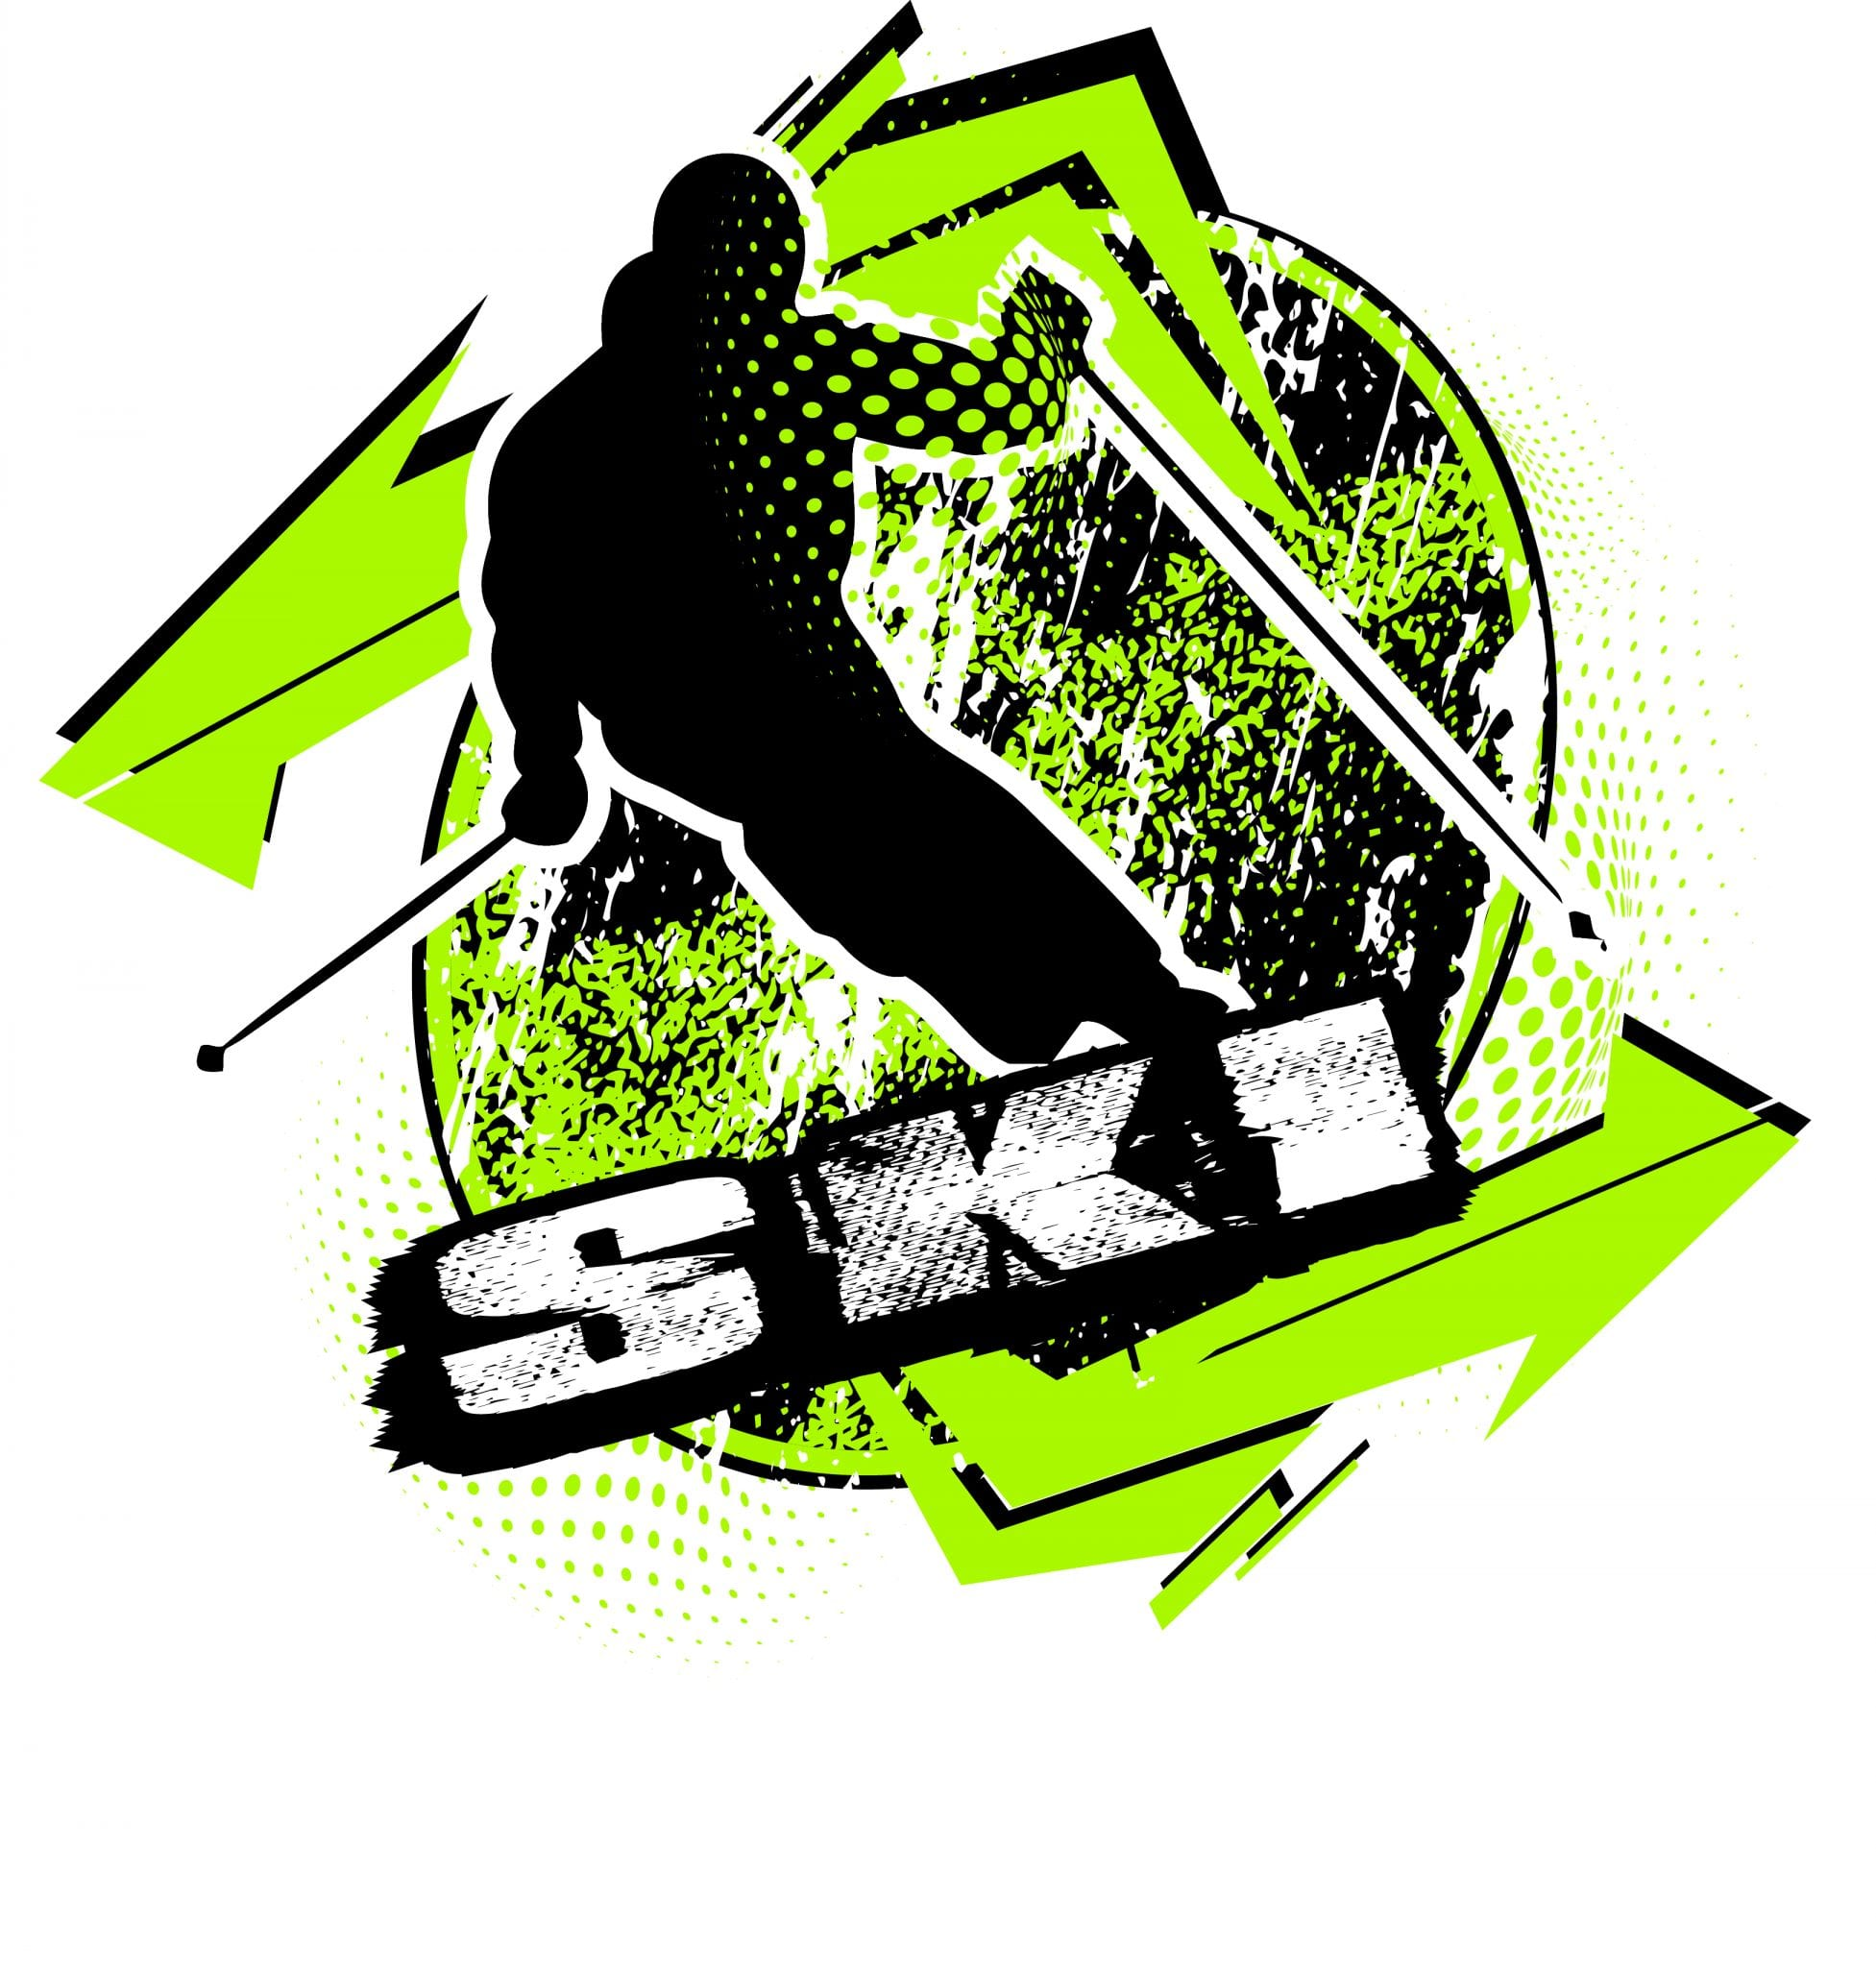 SKI T-shirt vector logo design for print